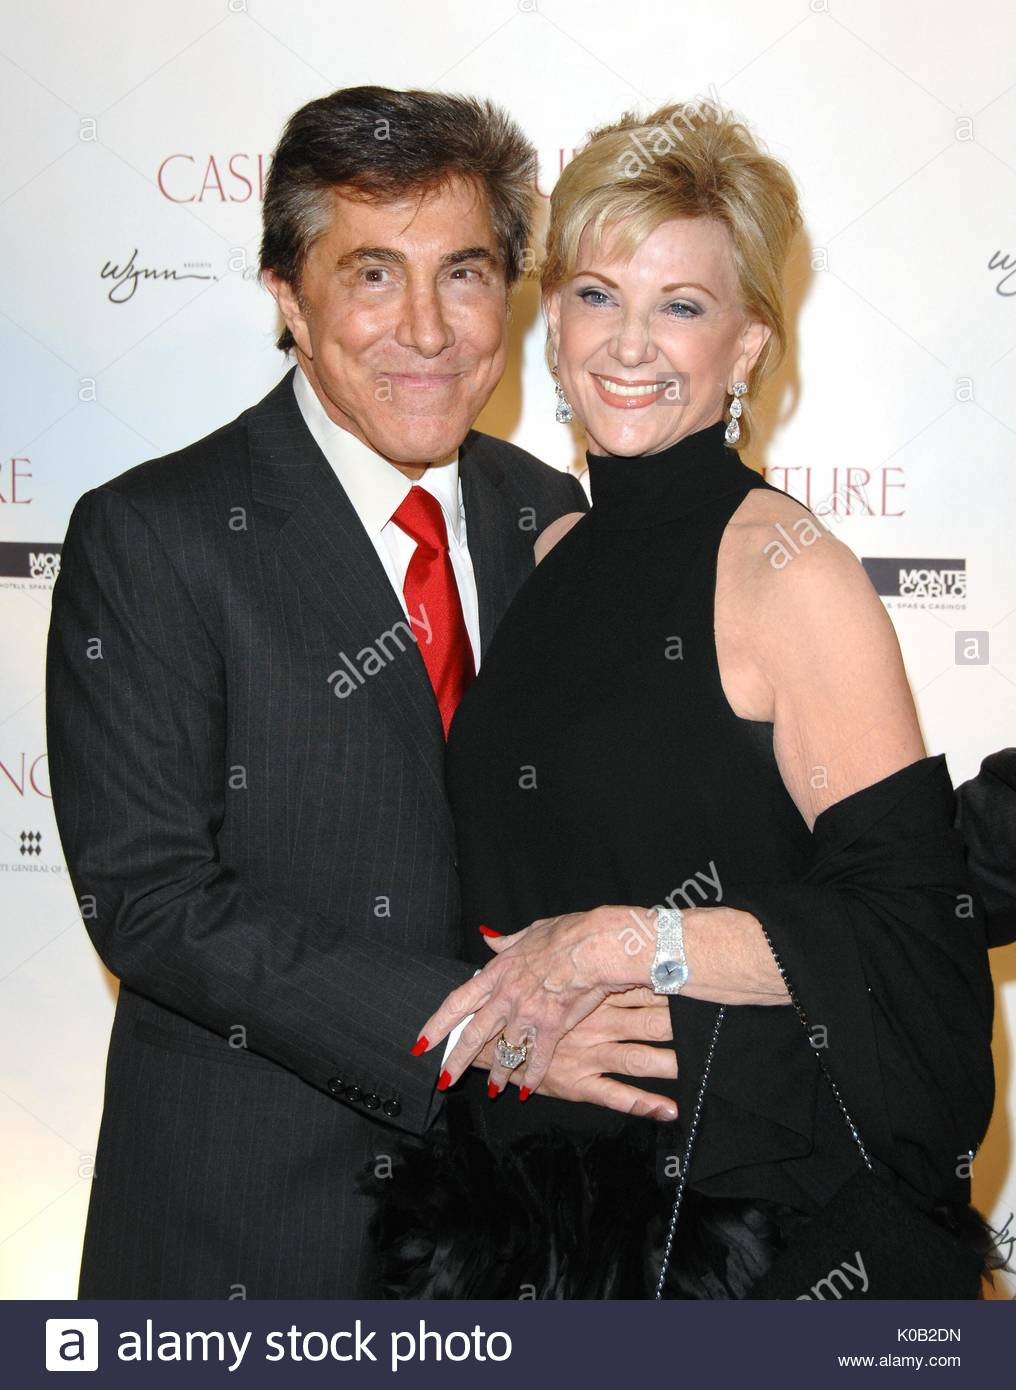 Steve Wynn And Elaine Wynn At Casino Couture: An Evening